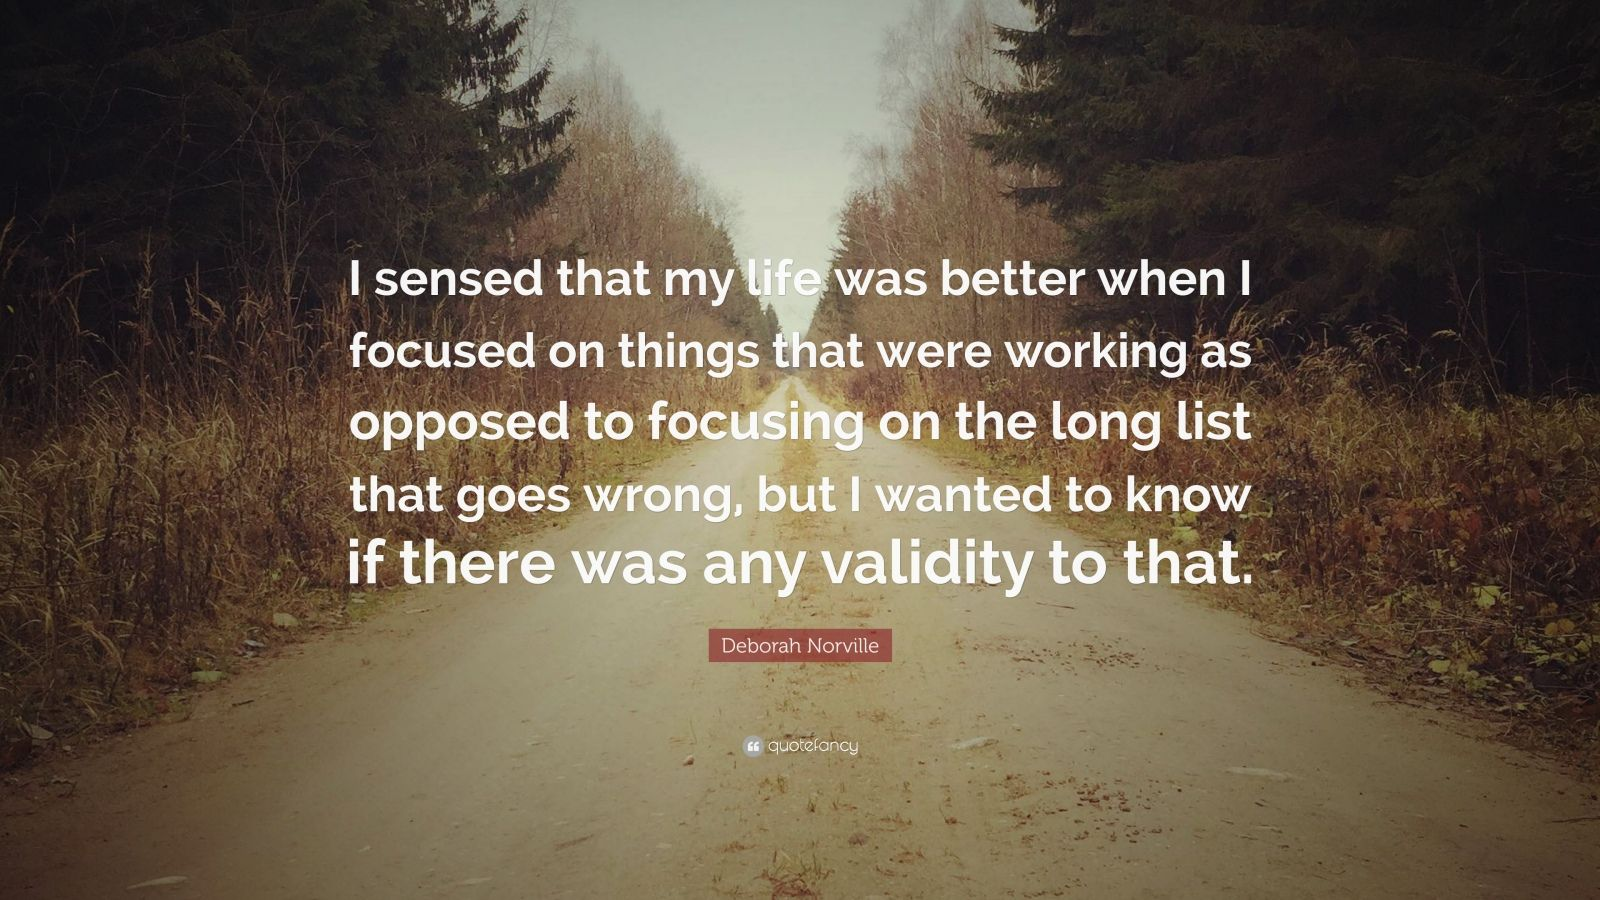 """Deborah Norville Quote: """"I sensed that my life was better when I focused on things that were working as opposed to focusing on the long list that goes wrong, but I wanted to know if there was any validity to that."""""""